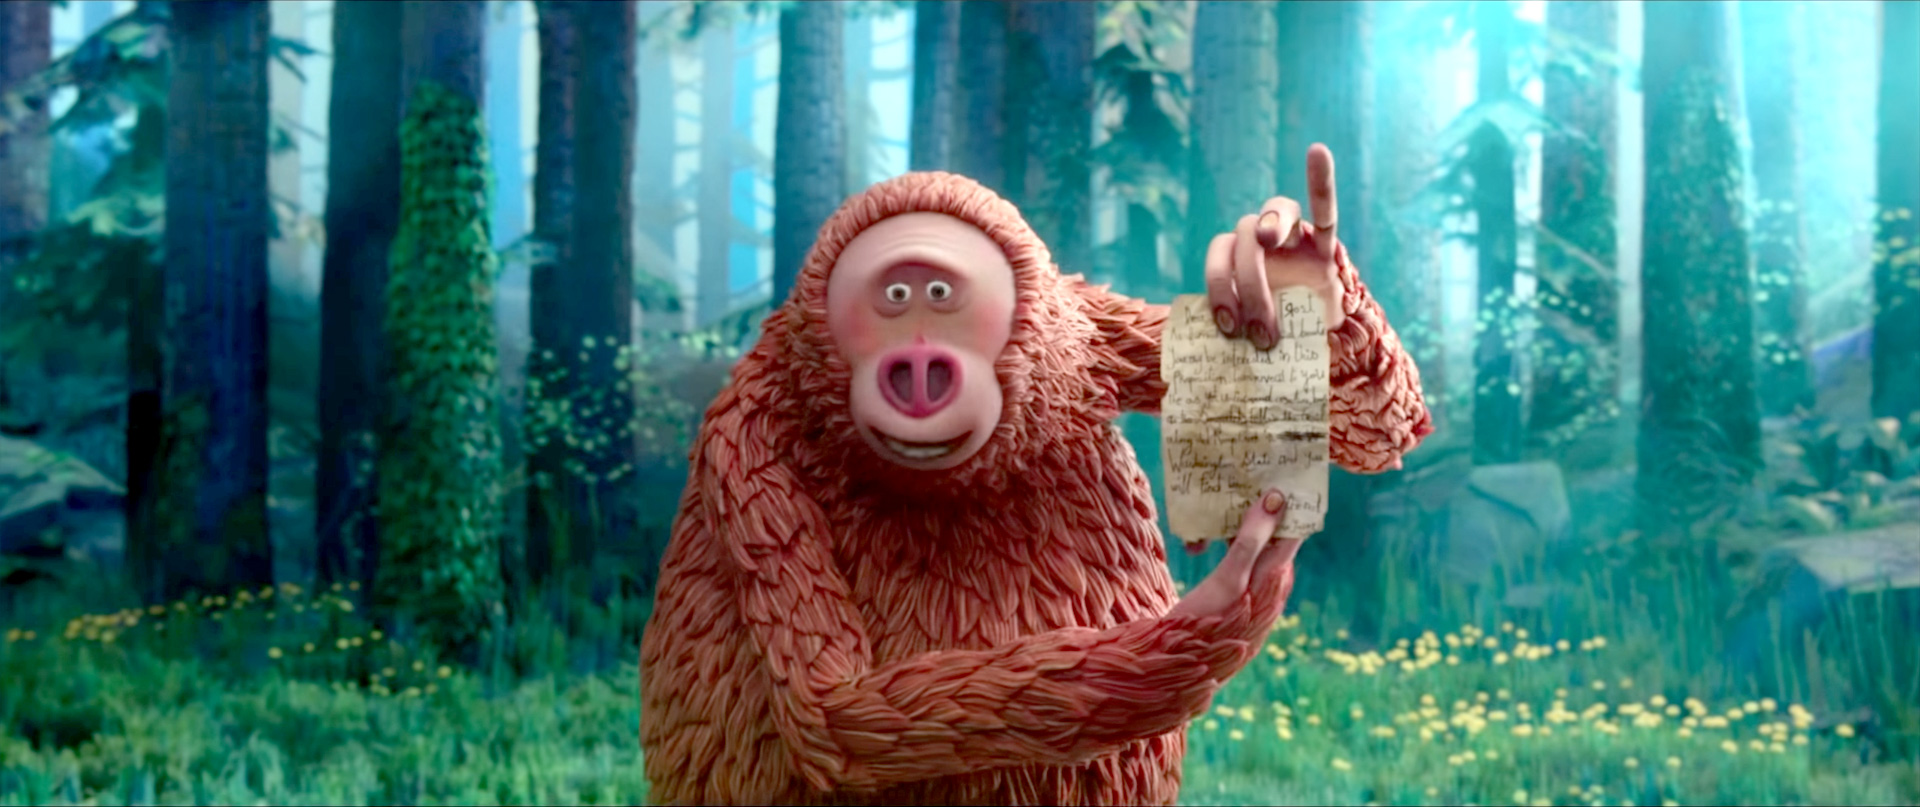 Is LAIKA Missing the Link with their Audience? – Film Review missing link2